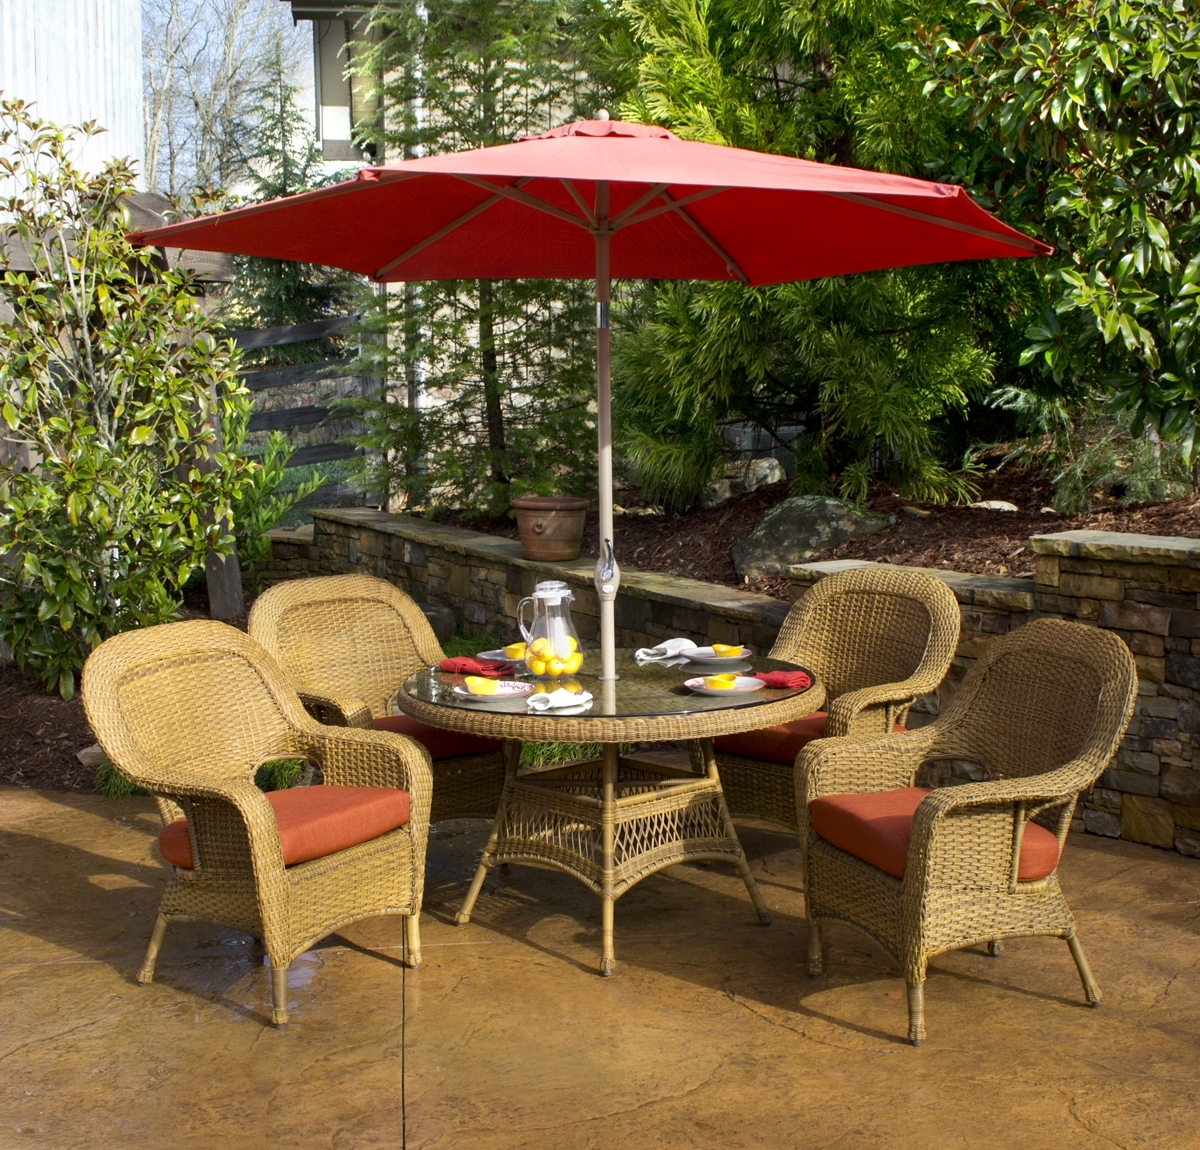 Patio Table Sets With Umbrellas Regarding Best And Newest Cute Umbrella For Patio Table : Life On The Move – Umbrella For (View 12 of 20)